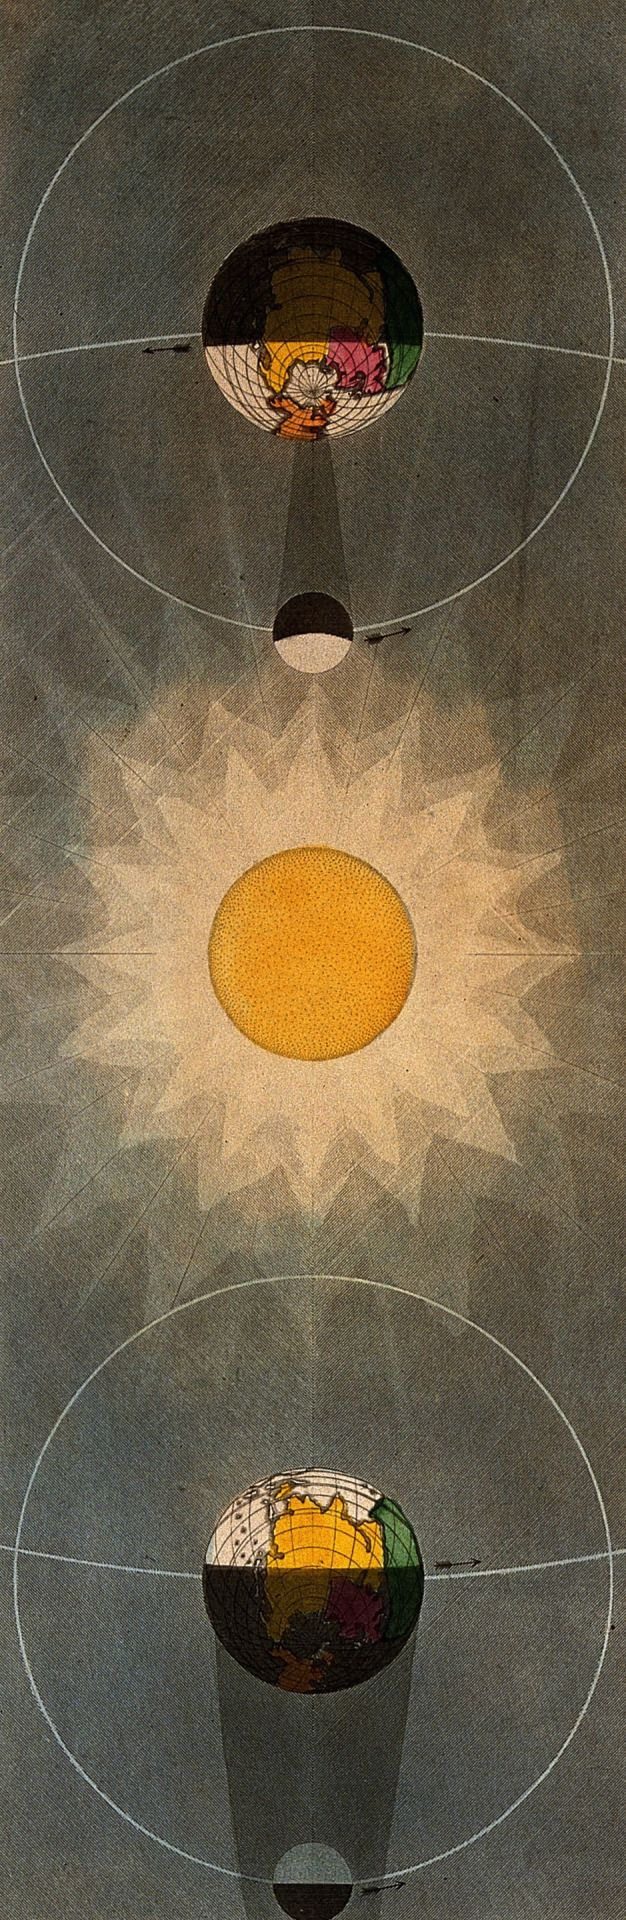 John Emslie. Eclipse of the Sun, Eclipse of the Moon. 1846.